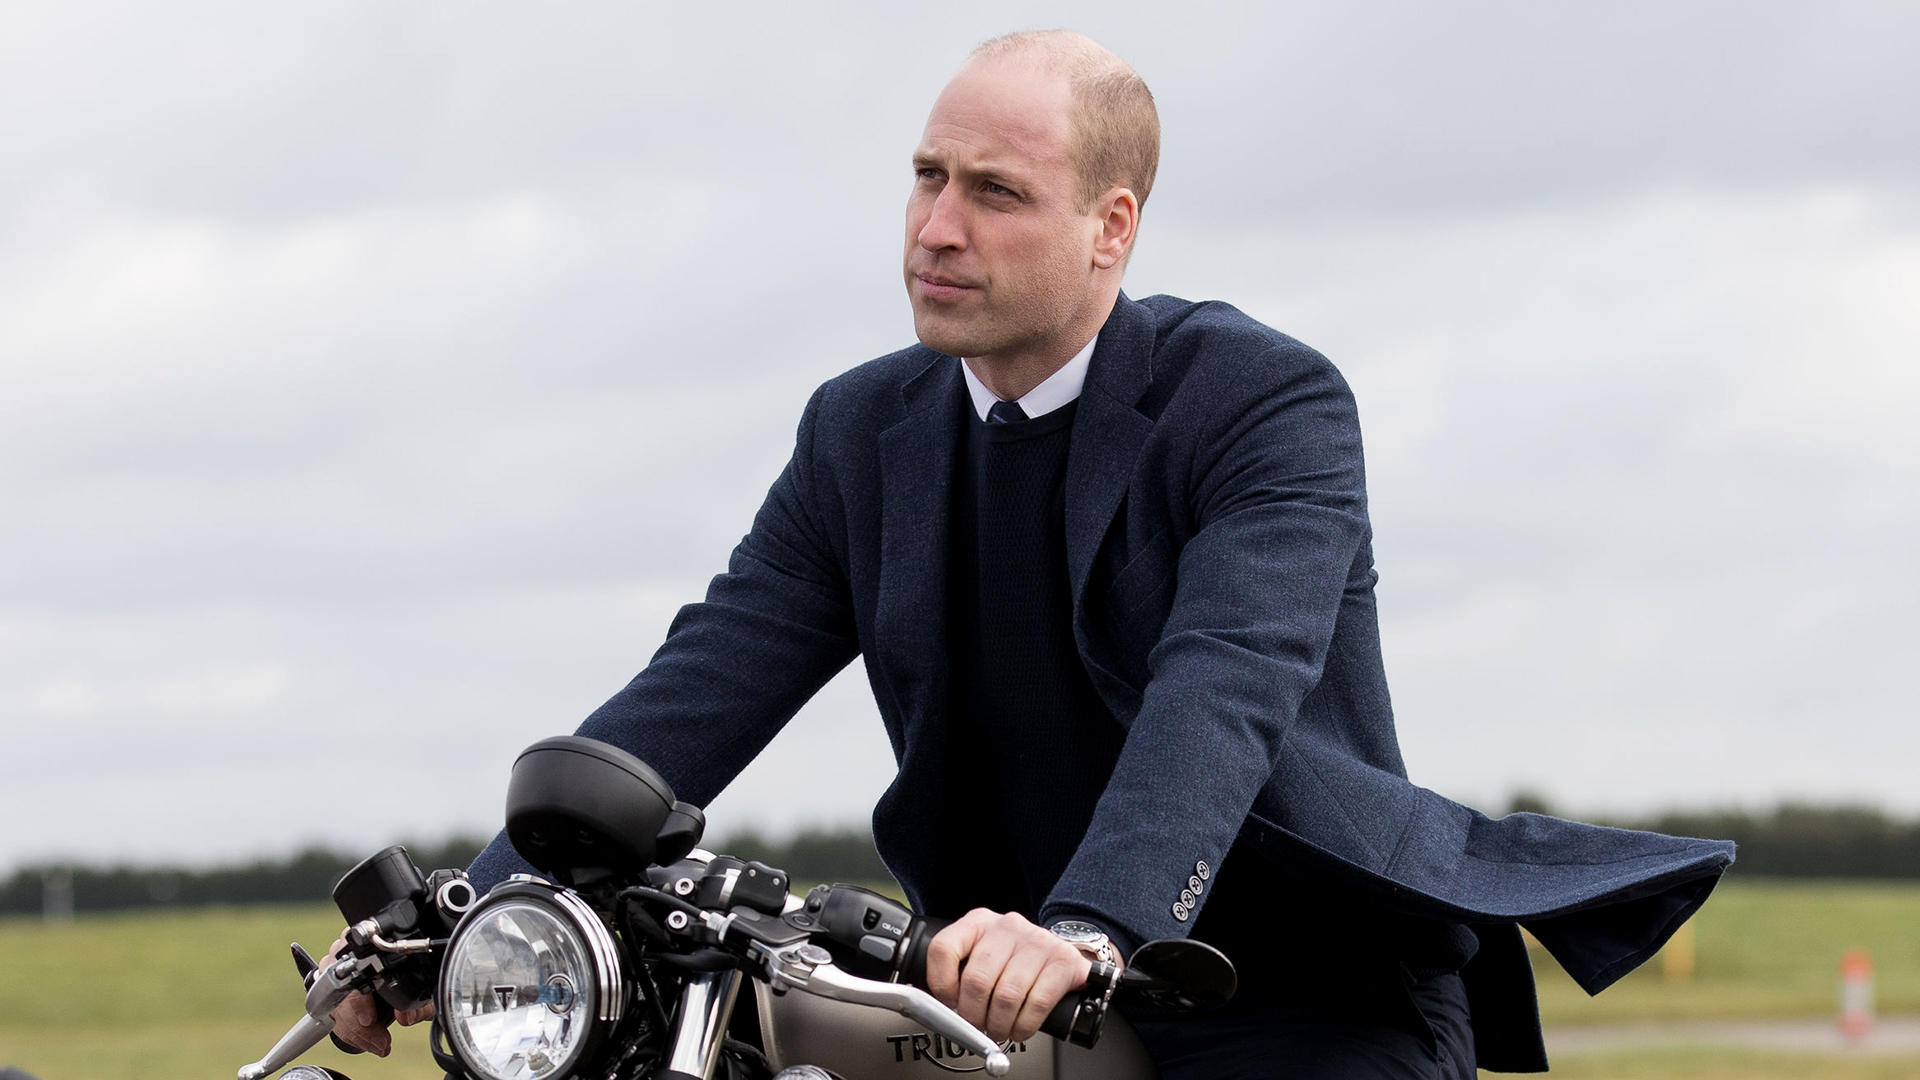 Prince William riding a motorcycle